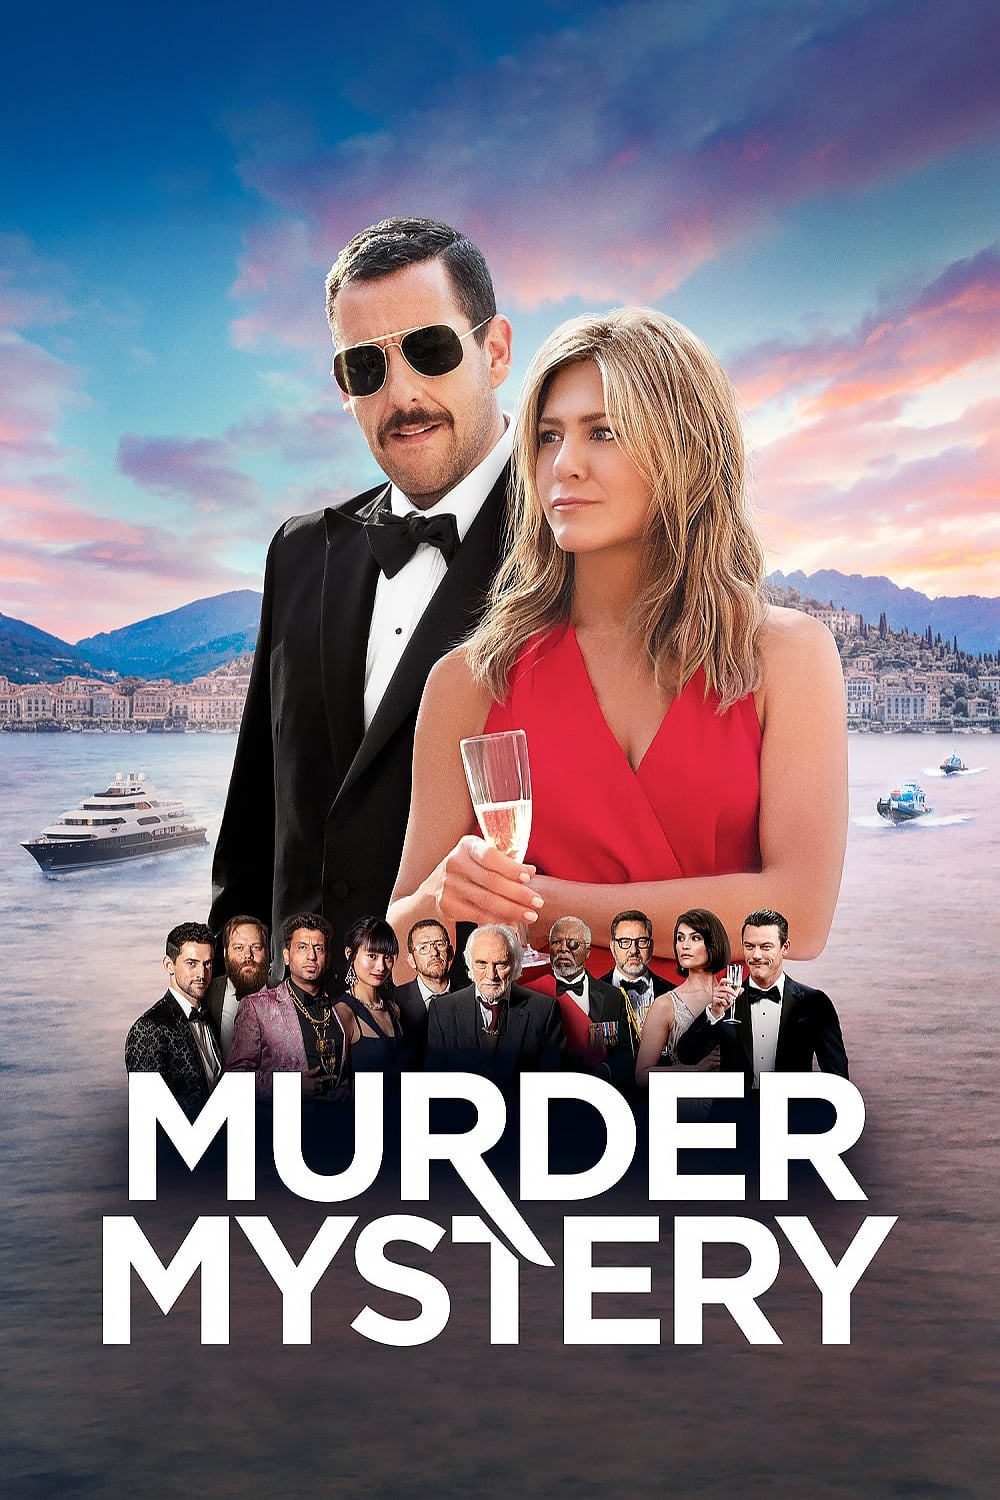 image for Murder Mystery